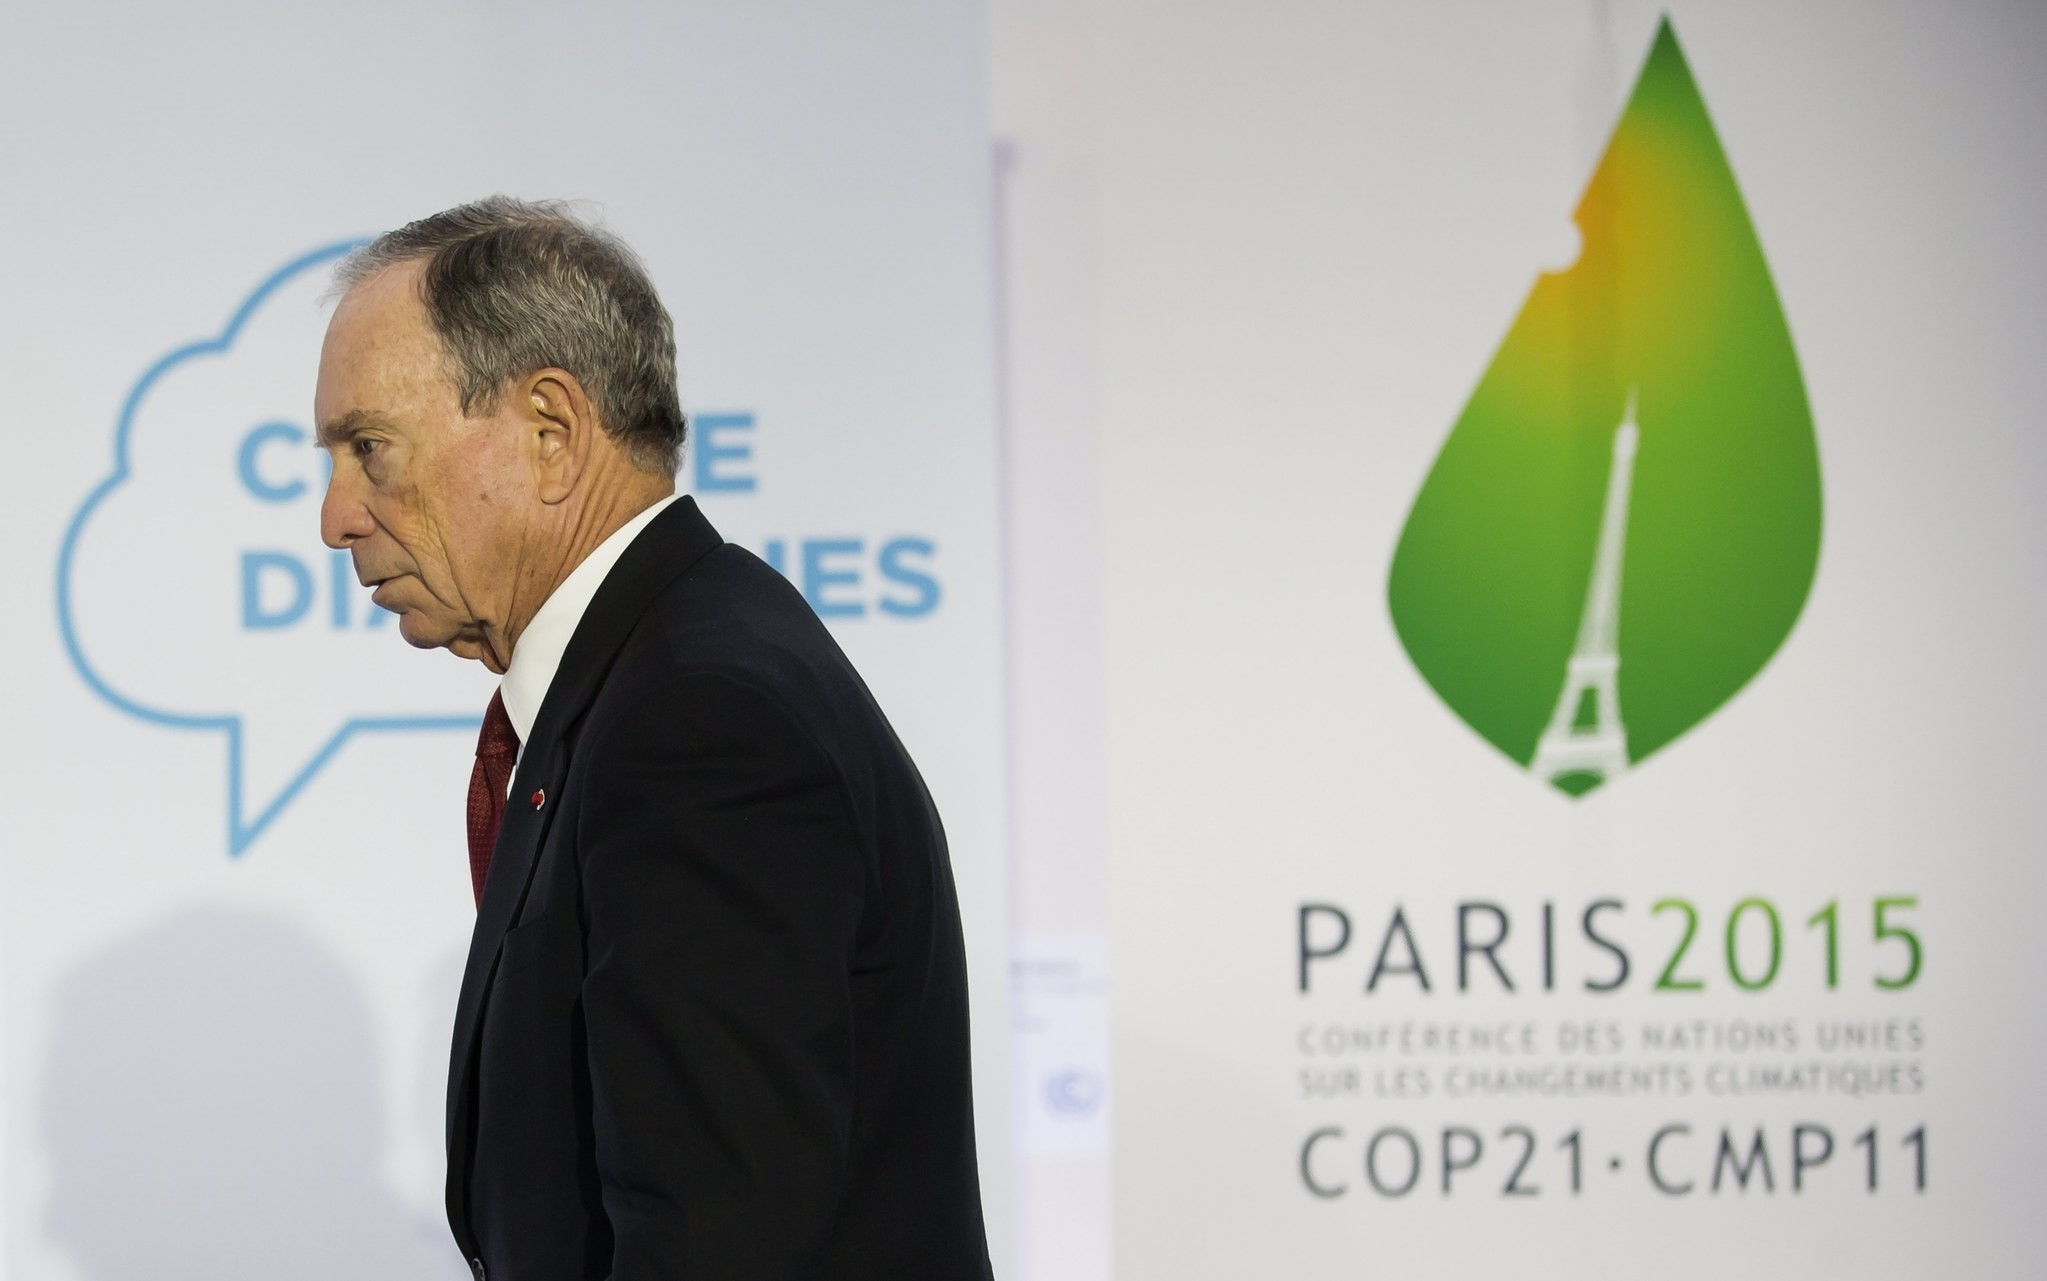 Former mayor of New York City Michael Bloomberg attends a news conference at the COP21 World Climate Change Conference 2015 in Paris.